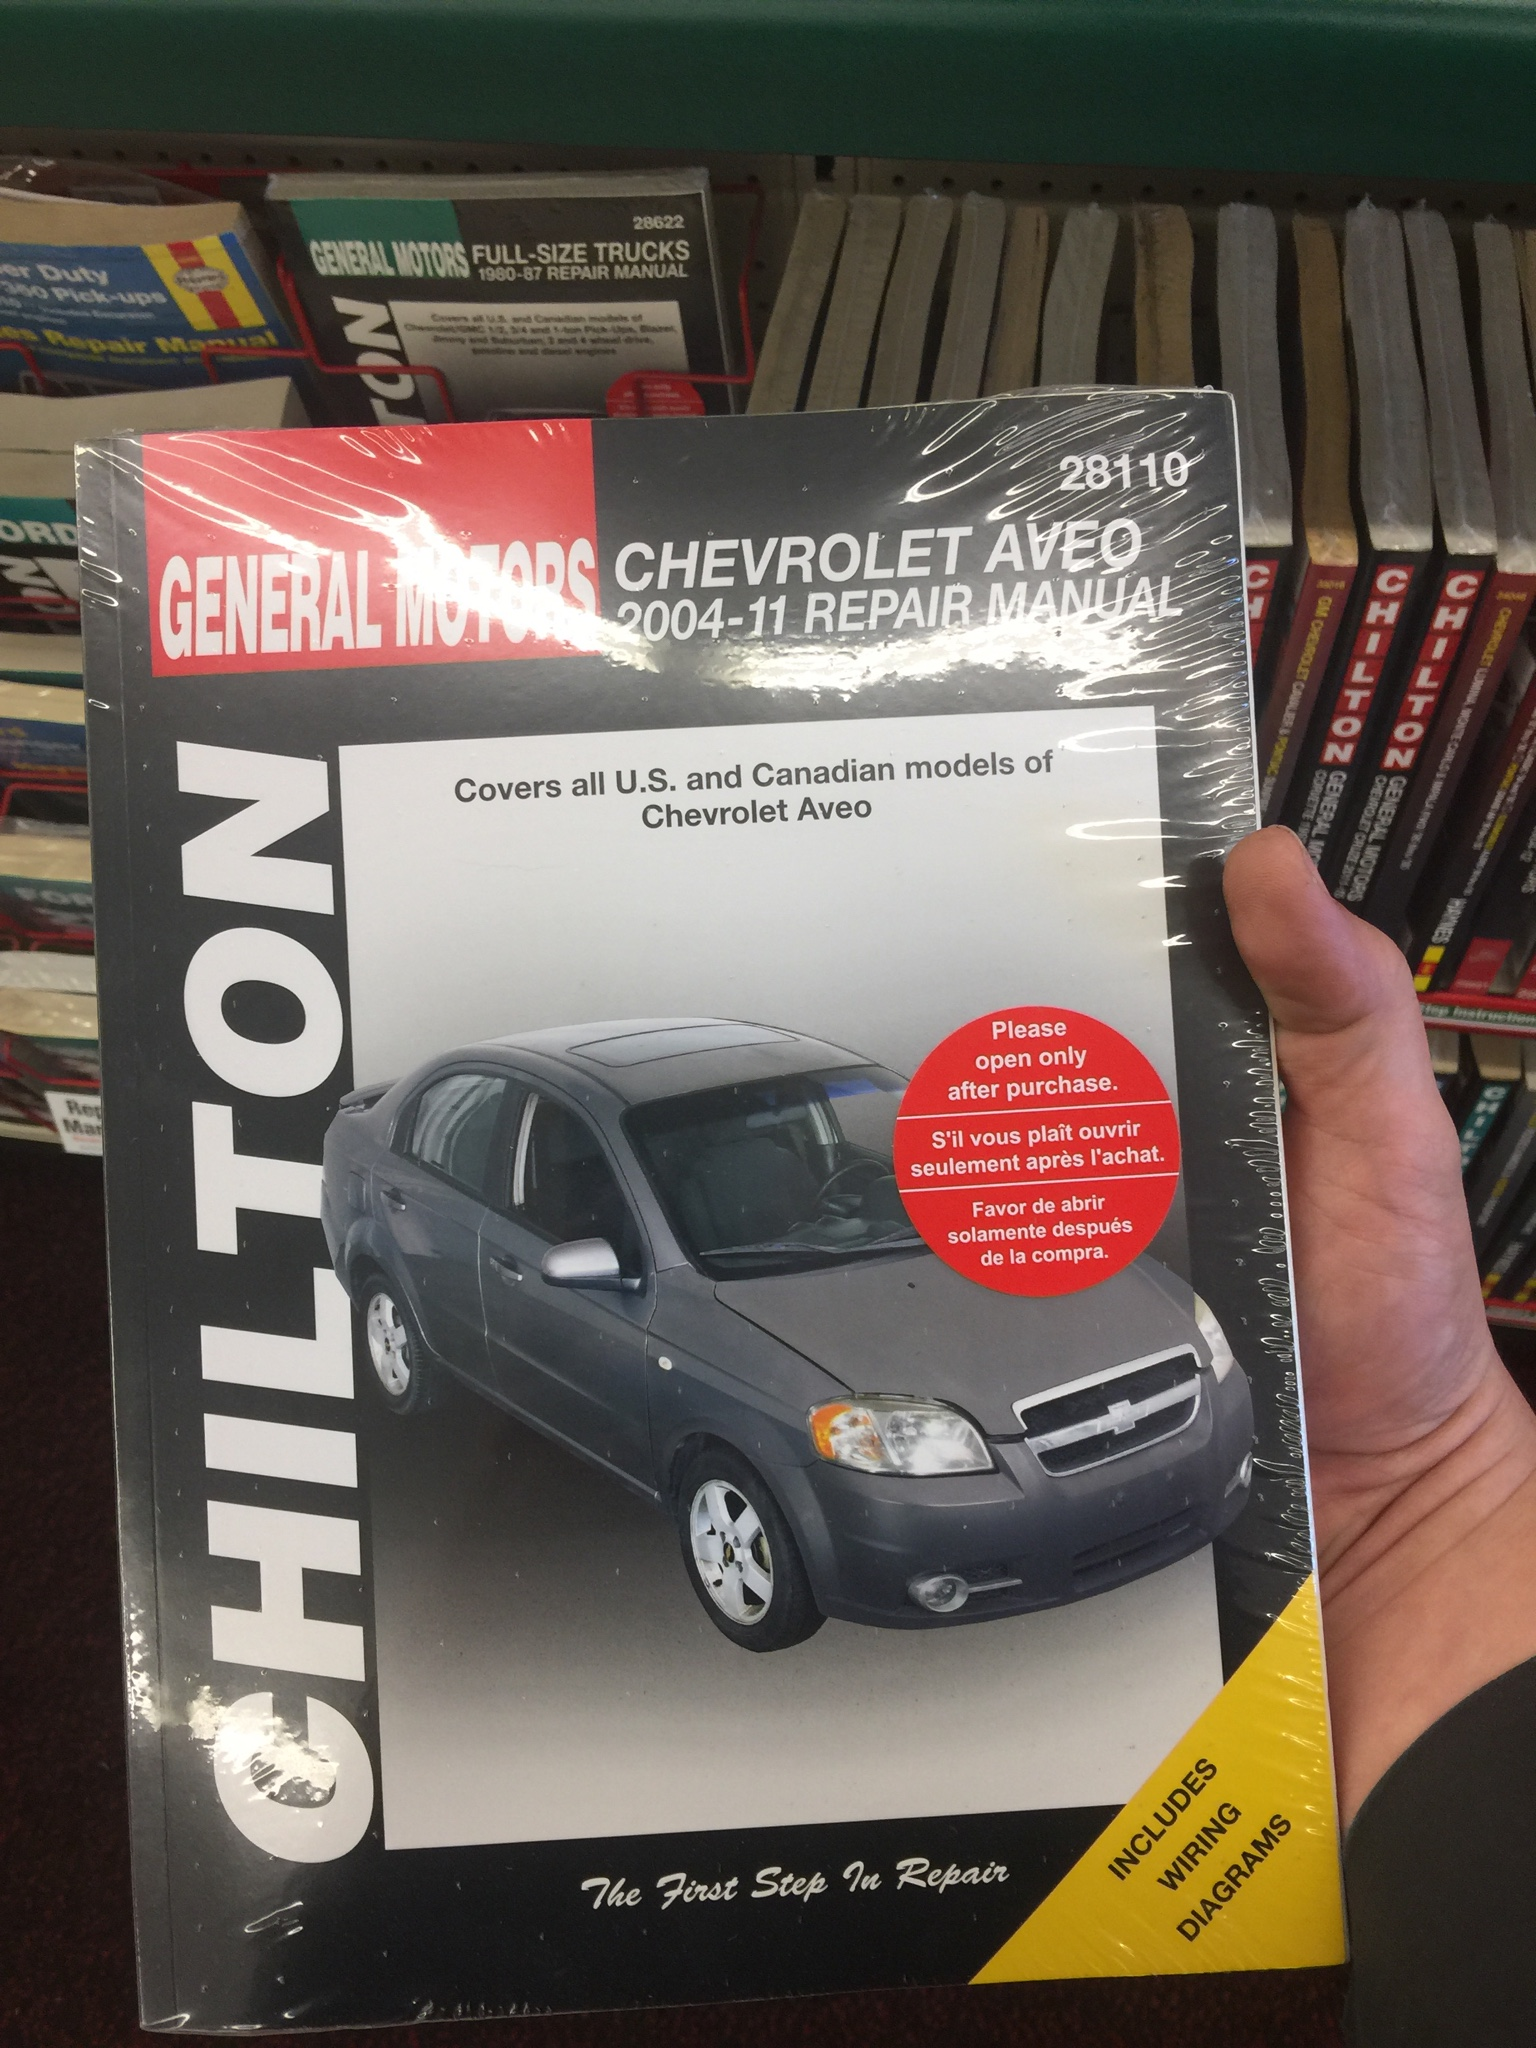 Chilton manual download download ford lincoln all models service repair manuals 2000 2004 pdf youtube array where is the chiltons haynes manual page 2 rh aveoforum com fandeluxe Images